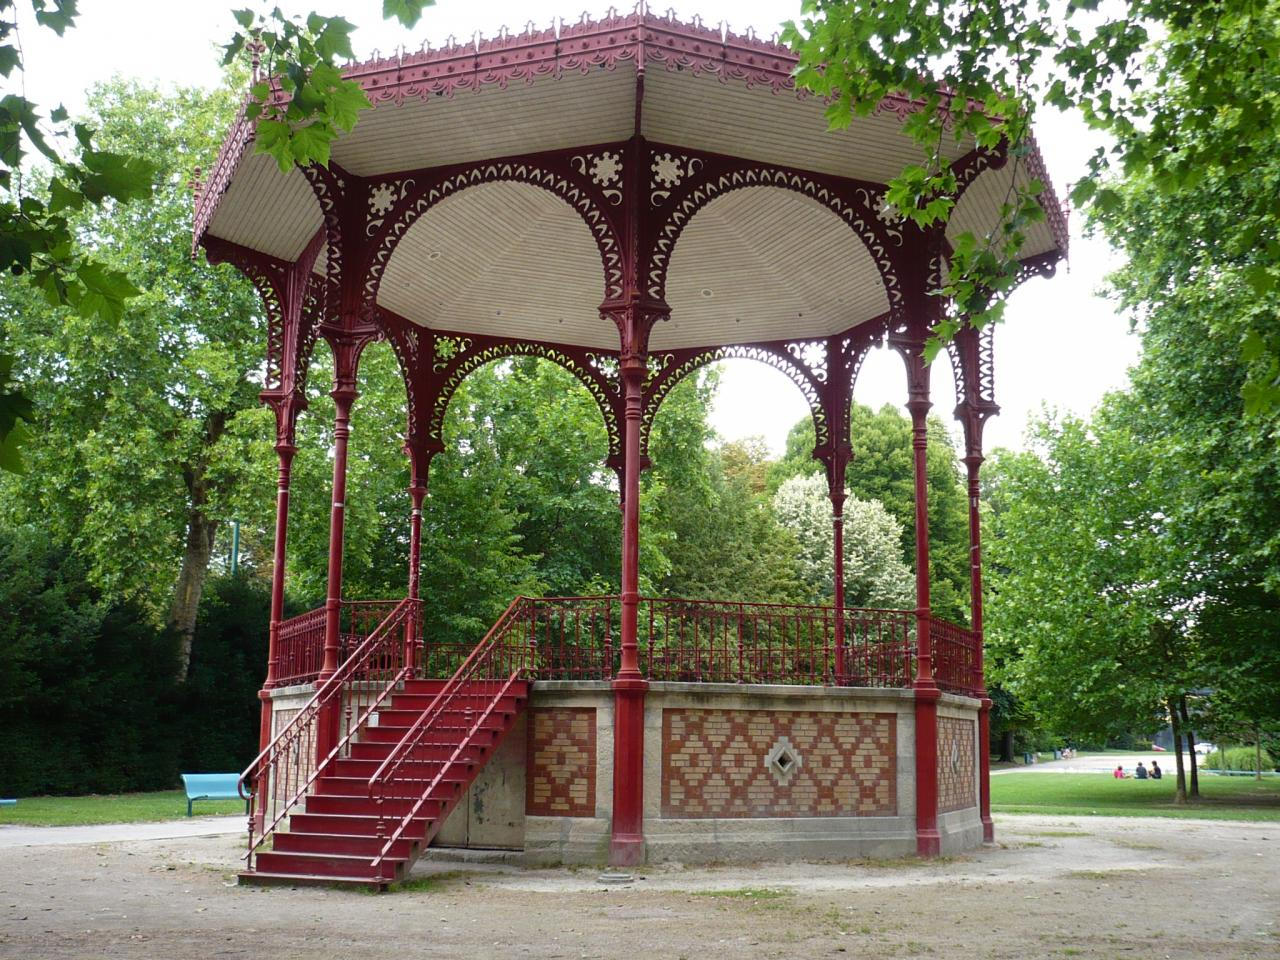 kiosque du jardin de ville grenoble. Black Bedroom Furniture Sets. Home Design Ideas